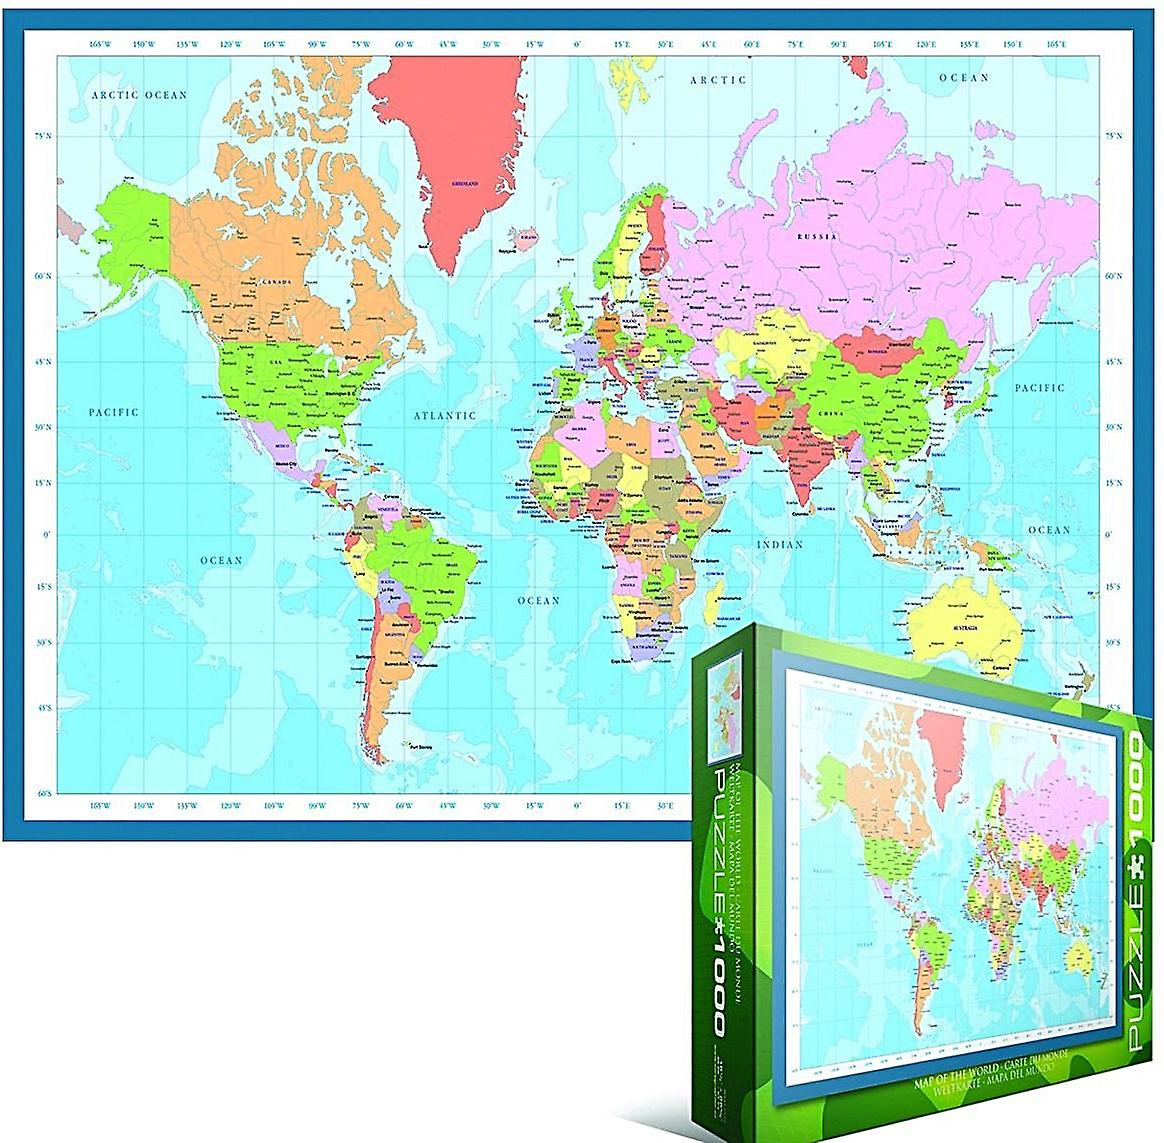 Map of the world 1000 piece jigsaw puzzle 680mm x 490mm pz fruugo map of the world 1000 piece jigsaw puzzle 680mm x 490mm pz gumiabroncs Gallery